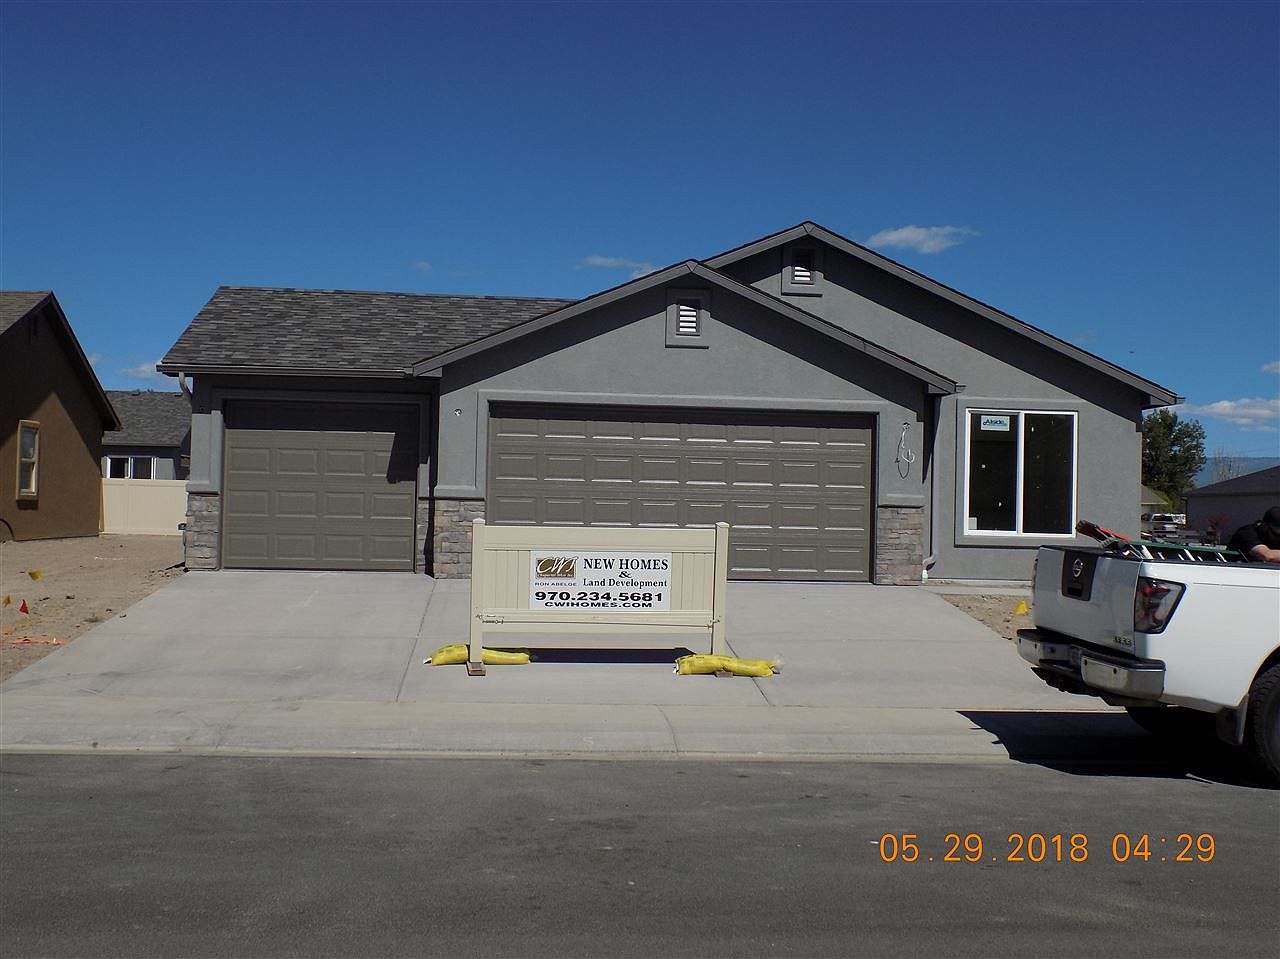 457 dodge st grand junction co 81504 zillow zillow